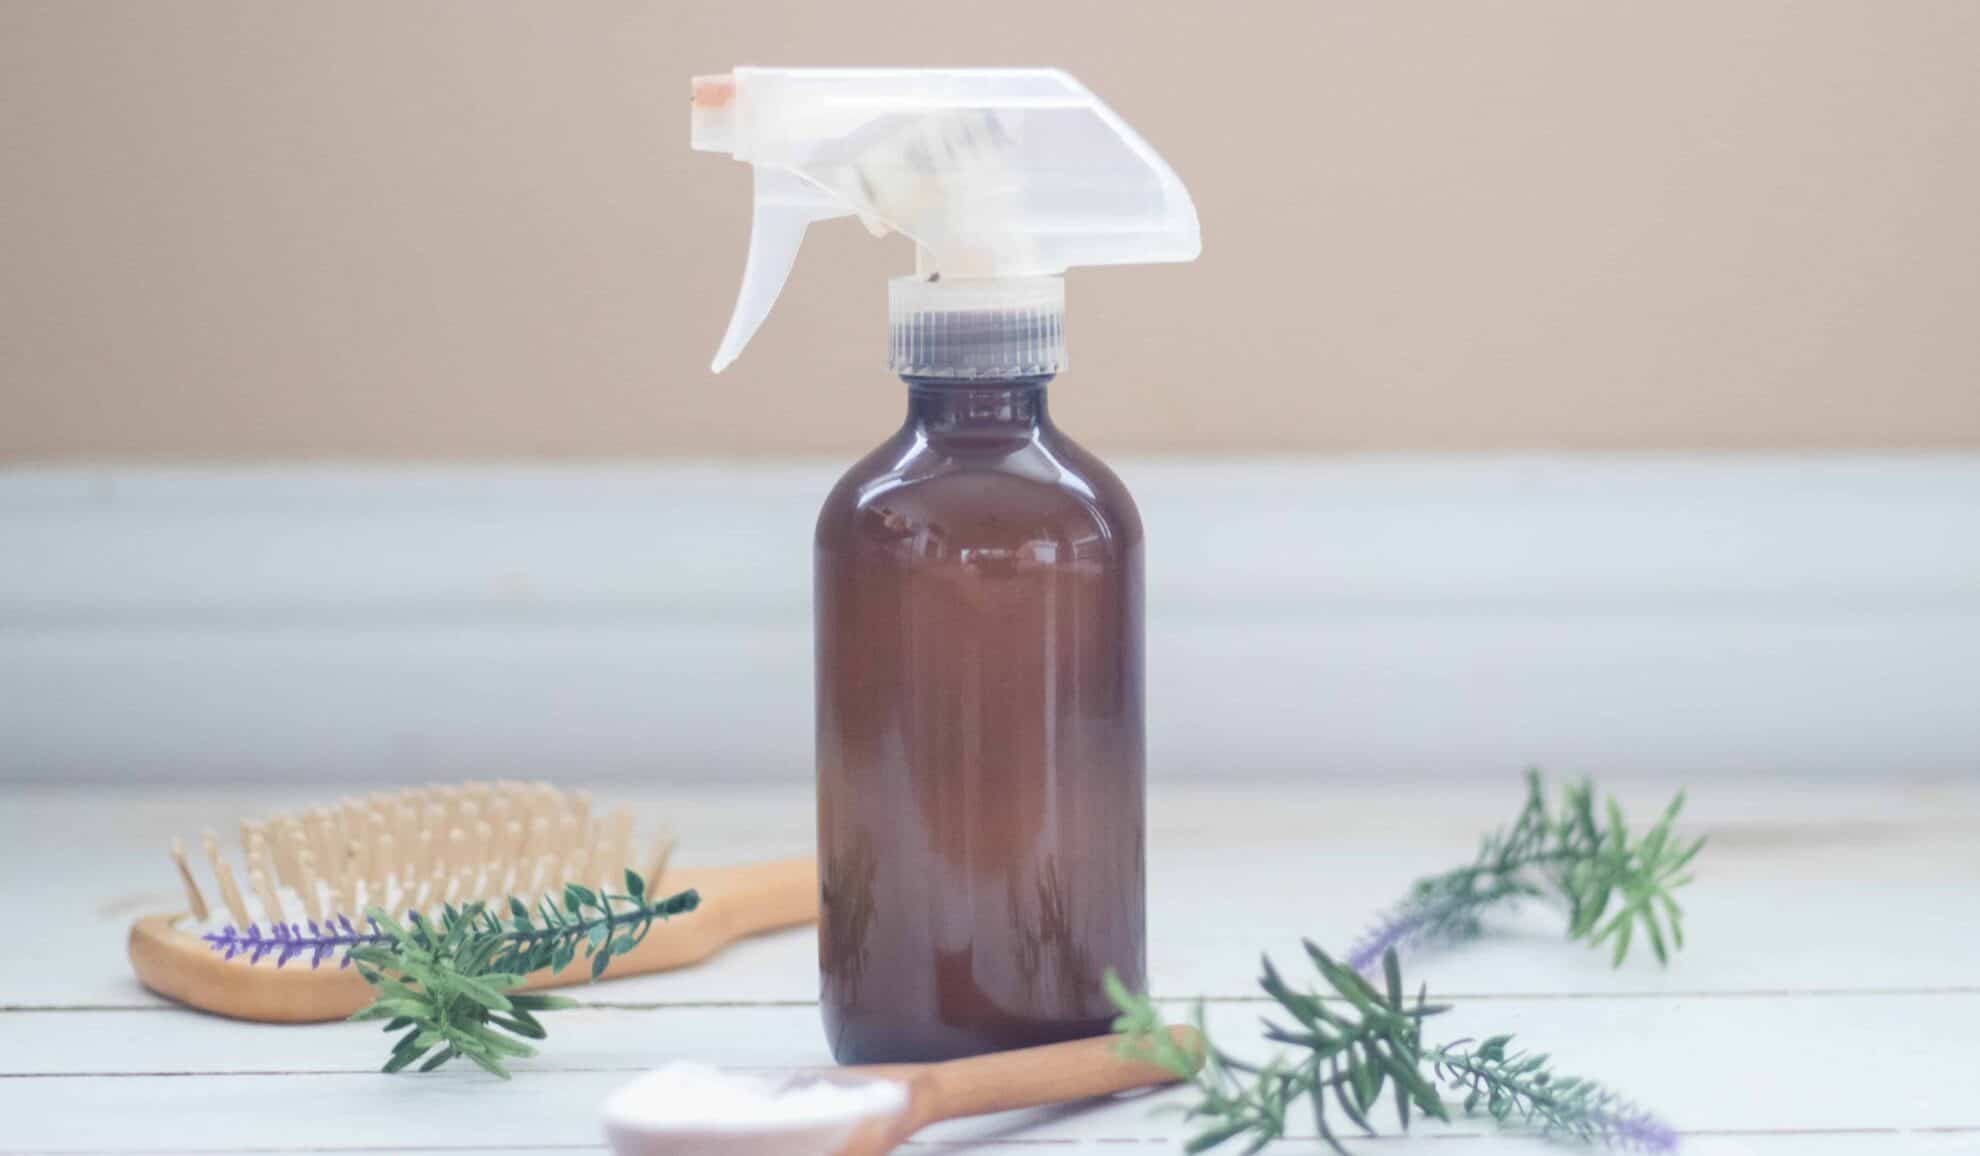 medium sized amber color glass dry shampoo spray bottle sitting on white ship lap with rosemary and lavender sprigs around